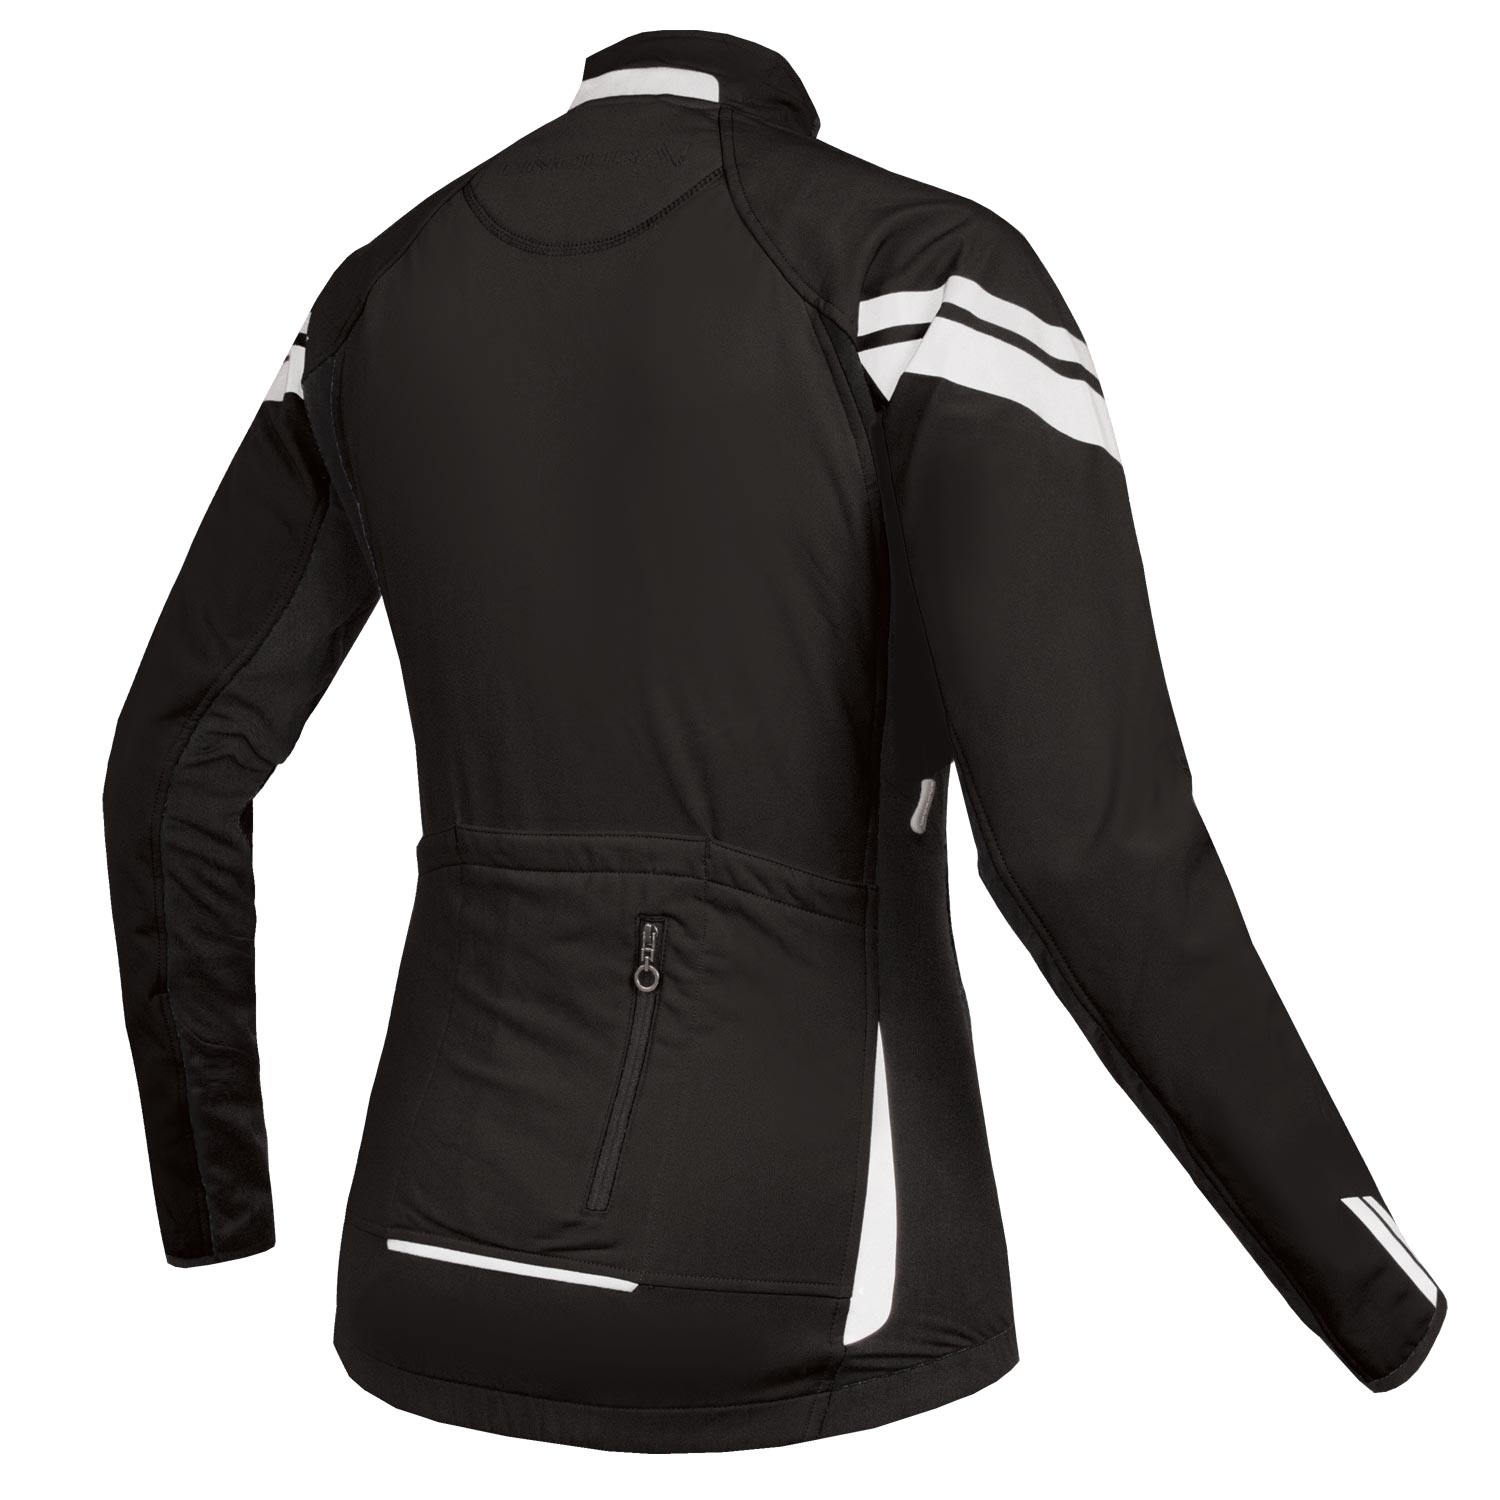 Wms Windchill Jacket II Black